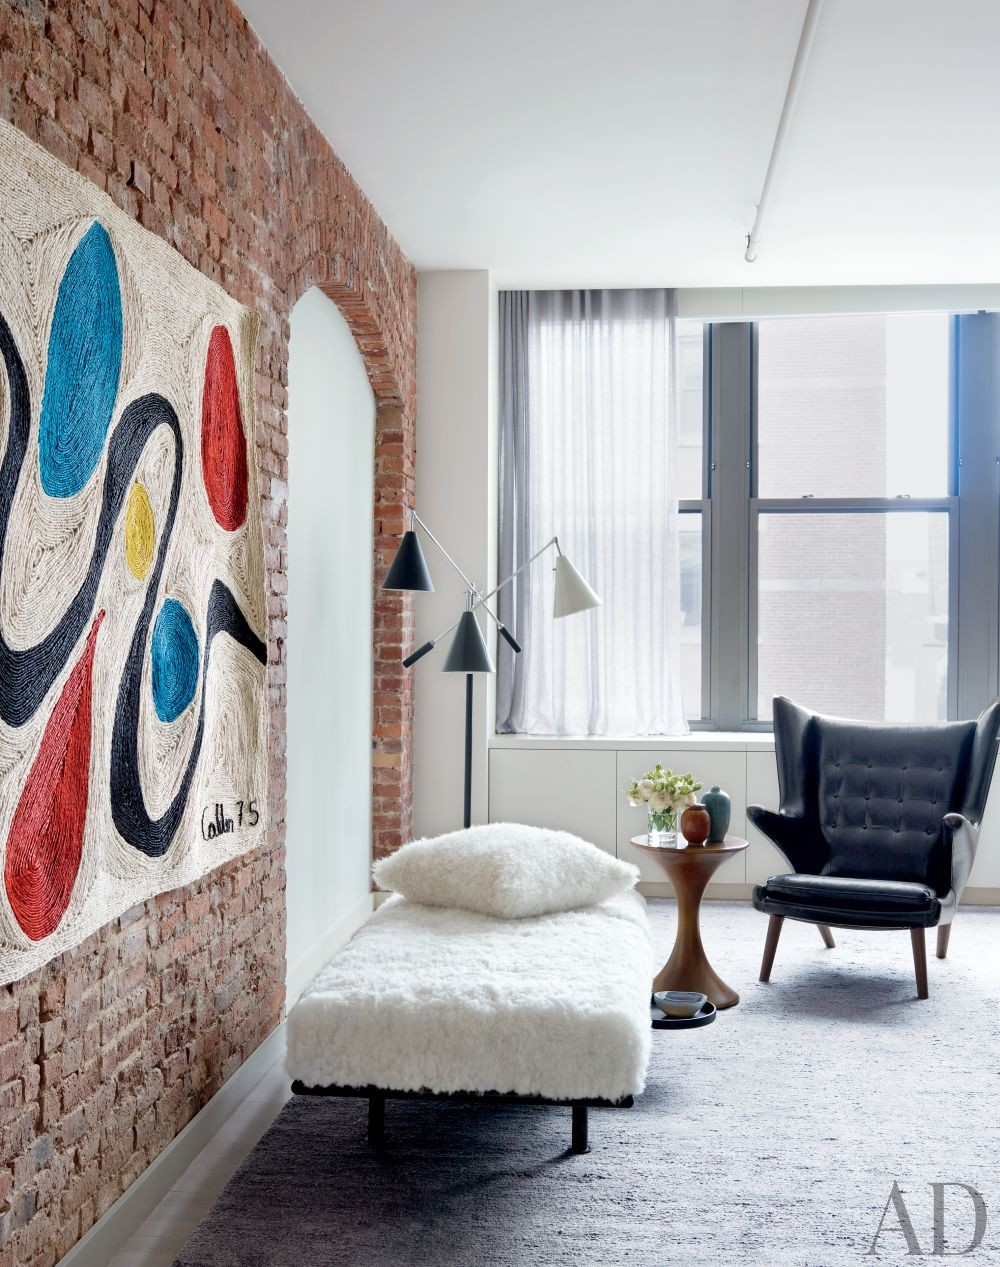 Modern Bedroom by Shawn Henderson Interior Design and Richard Perry Architect in New York, New York